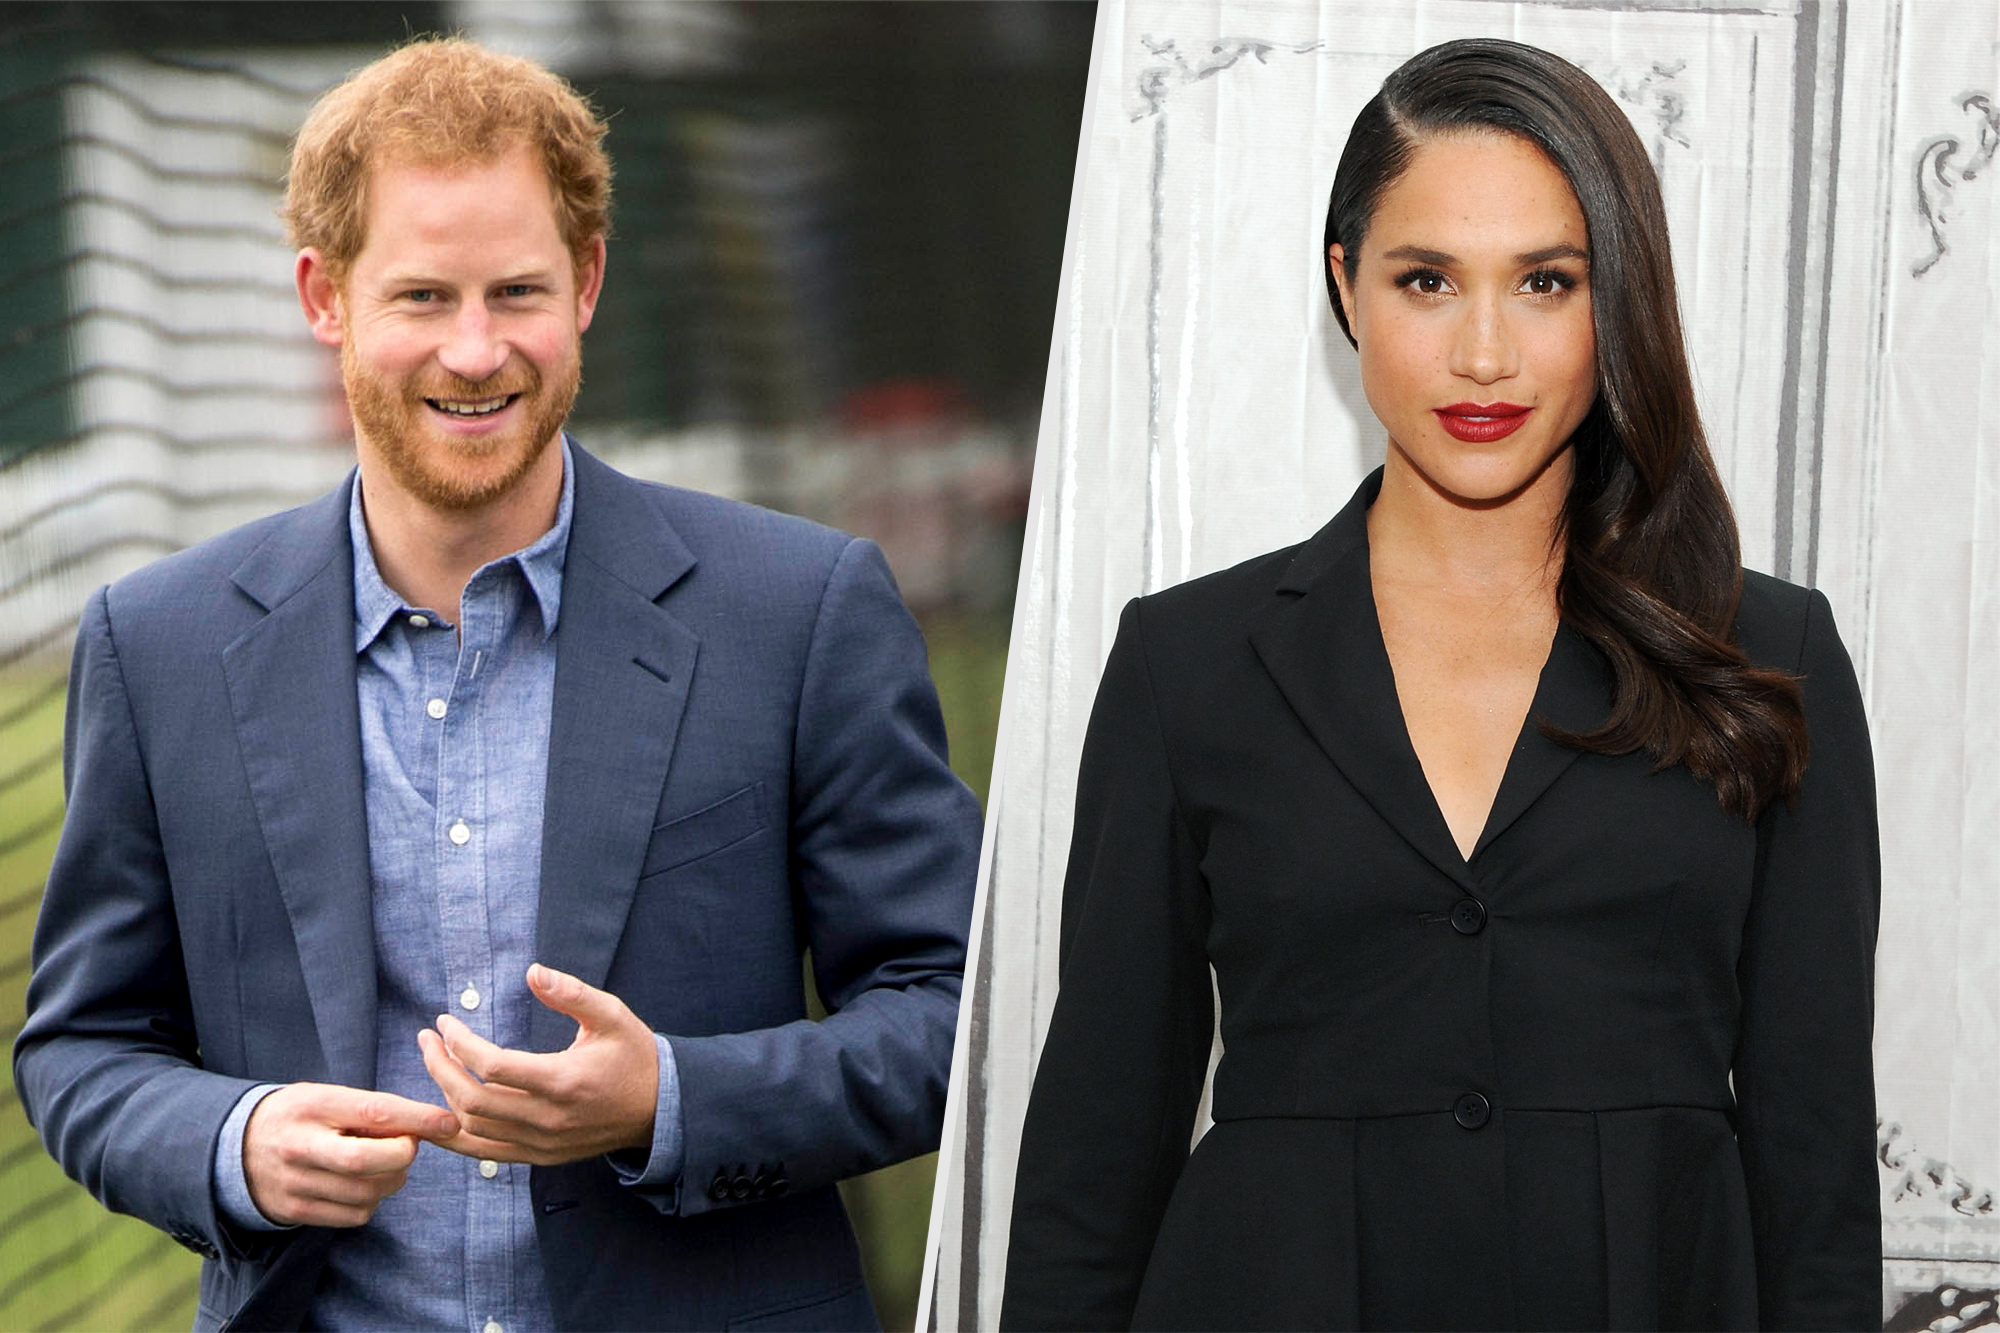 Prince Harry and Meghan Markle just took a stand for LGBT rights